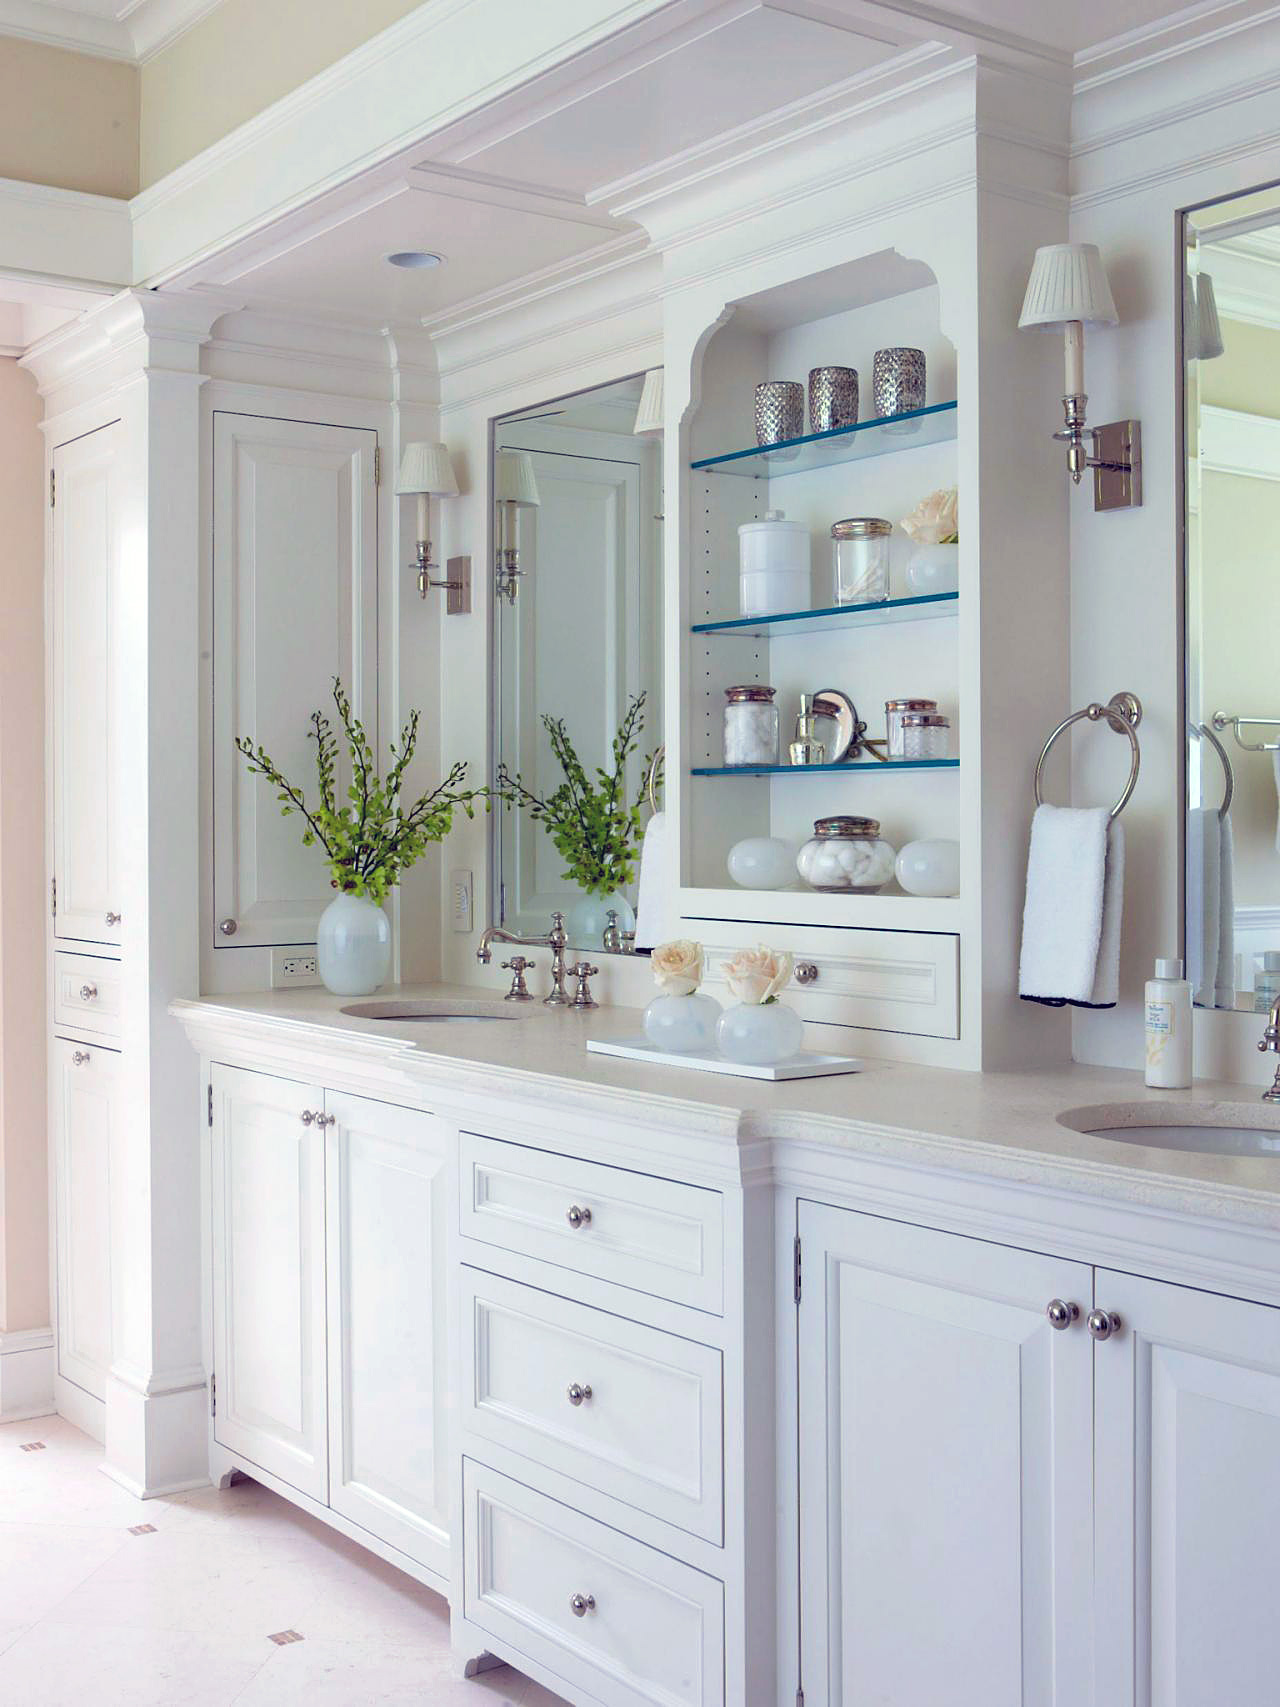 use white color to achieve a timeless bathroom design